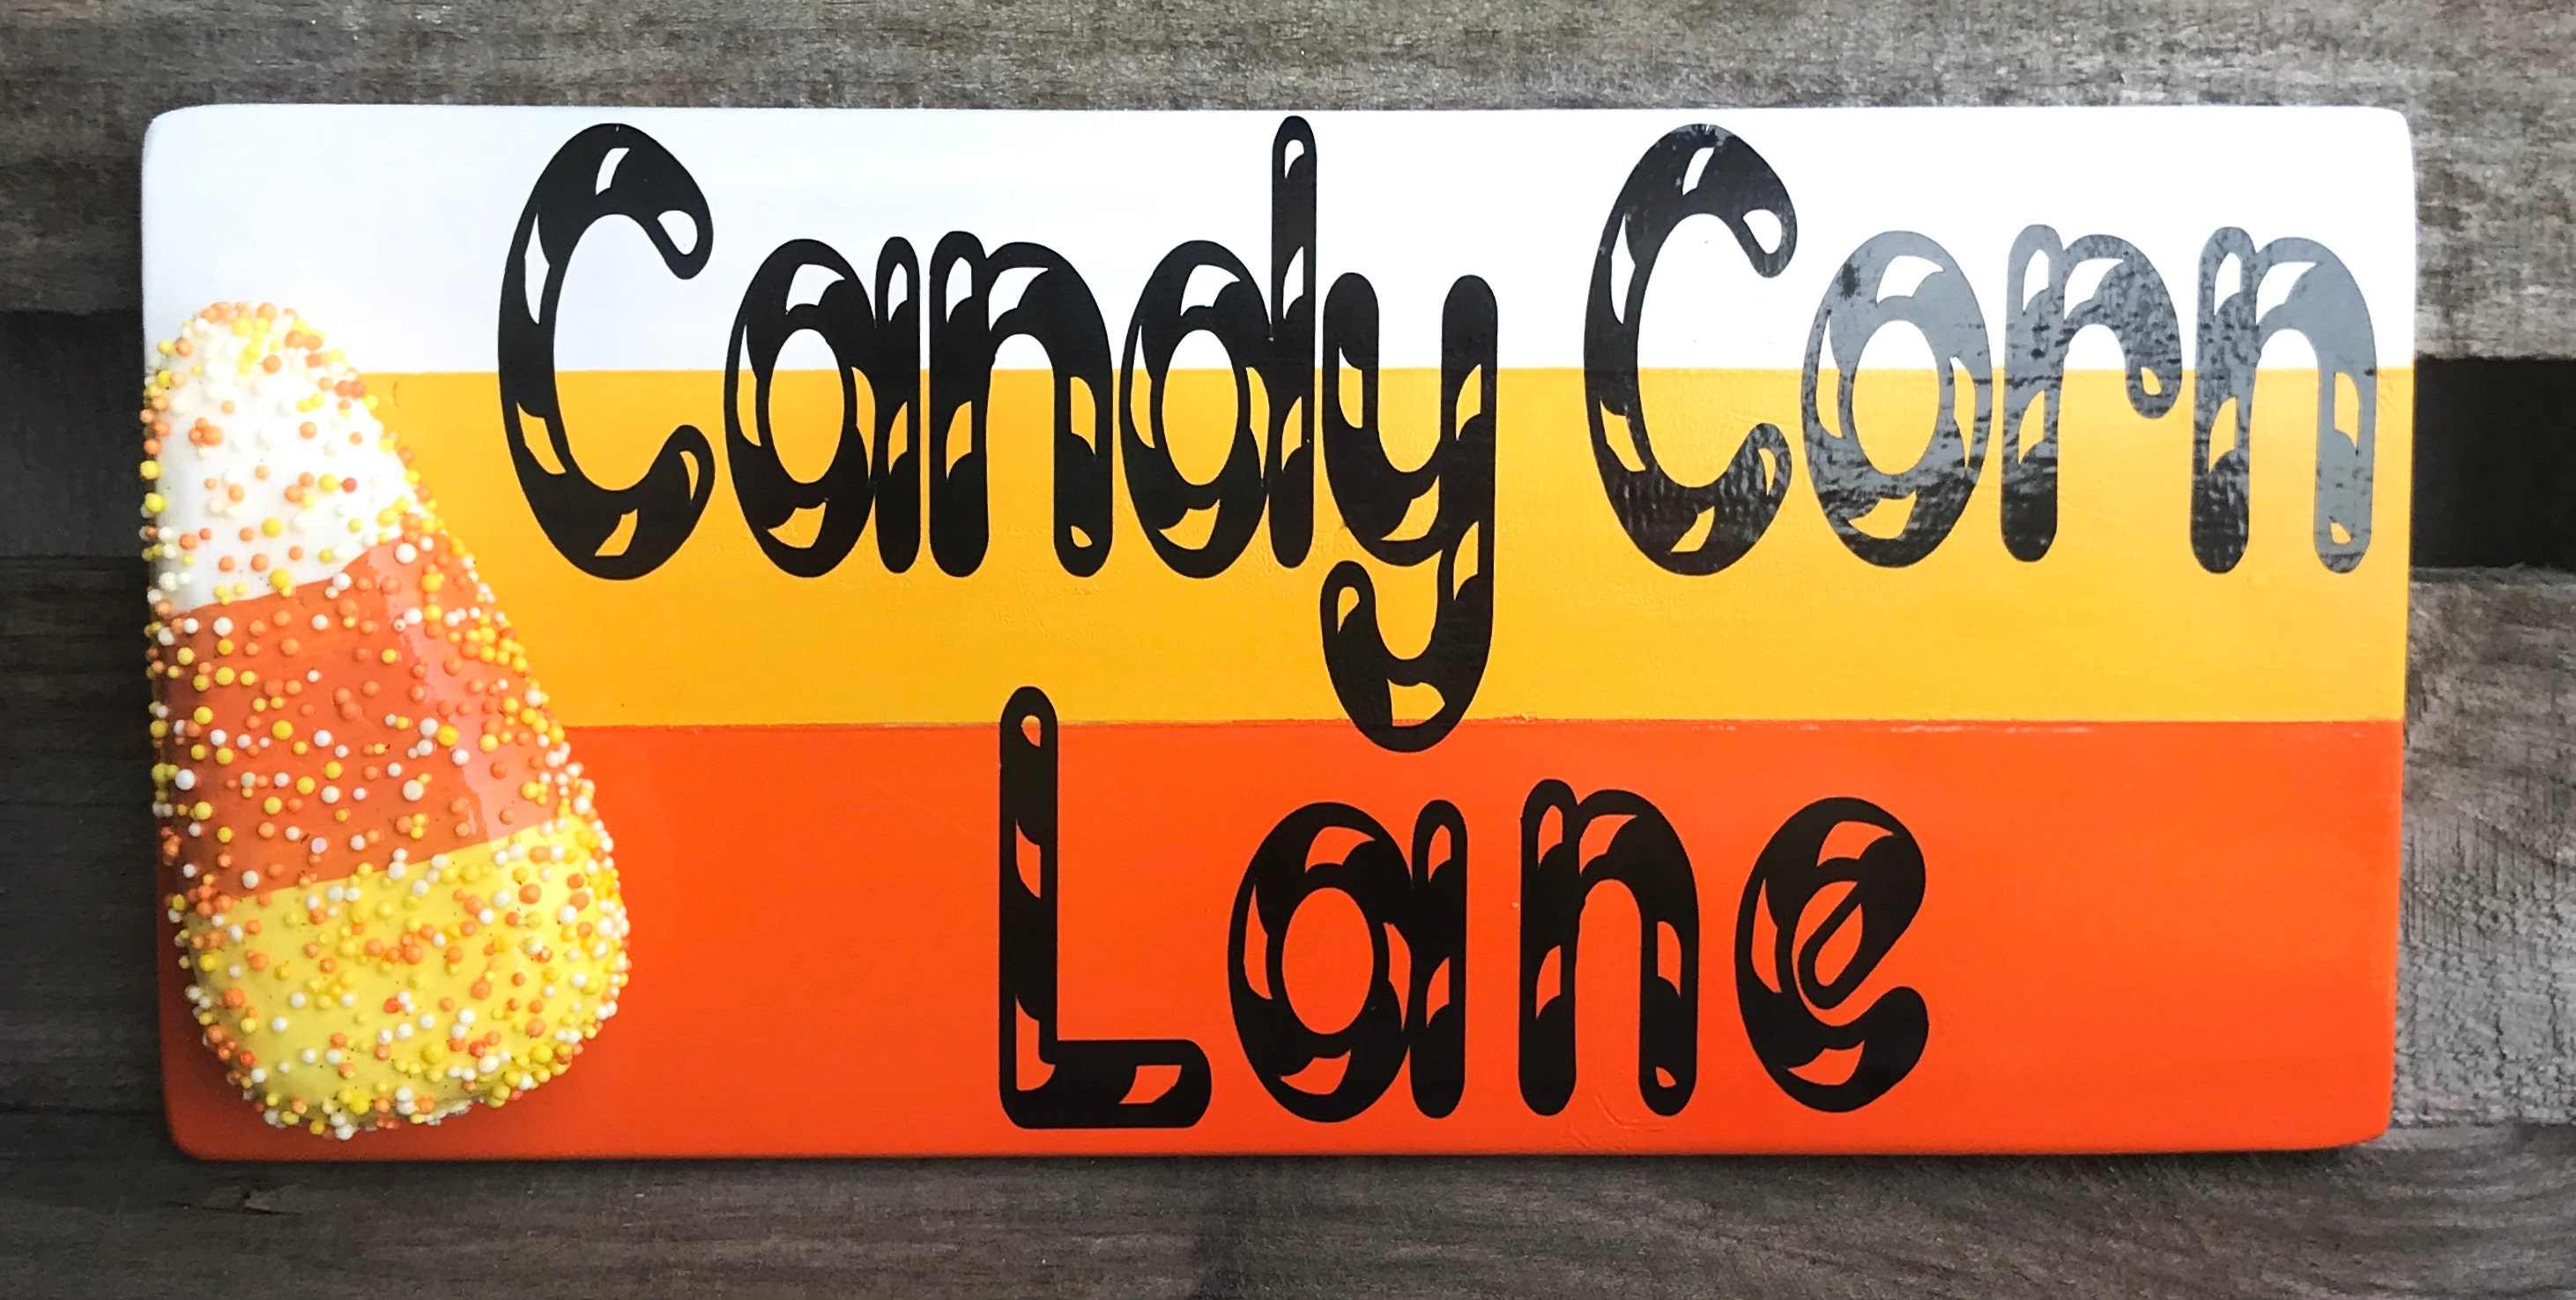 Candy Corn Lane wooden sign Wood Signs Custom Wood Sign   Etsy